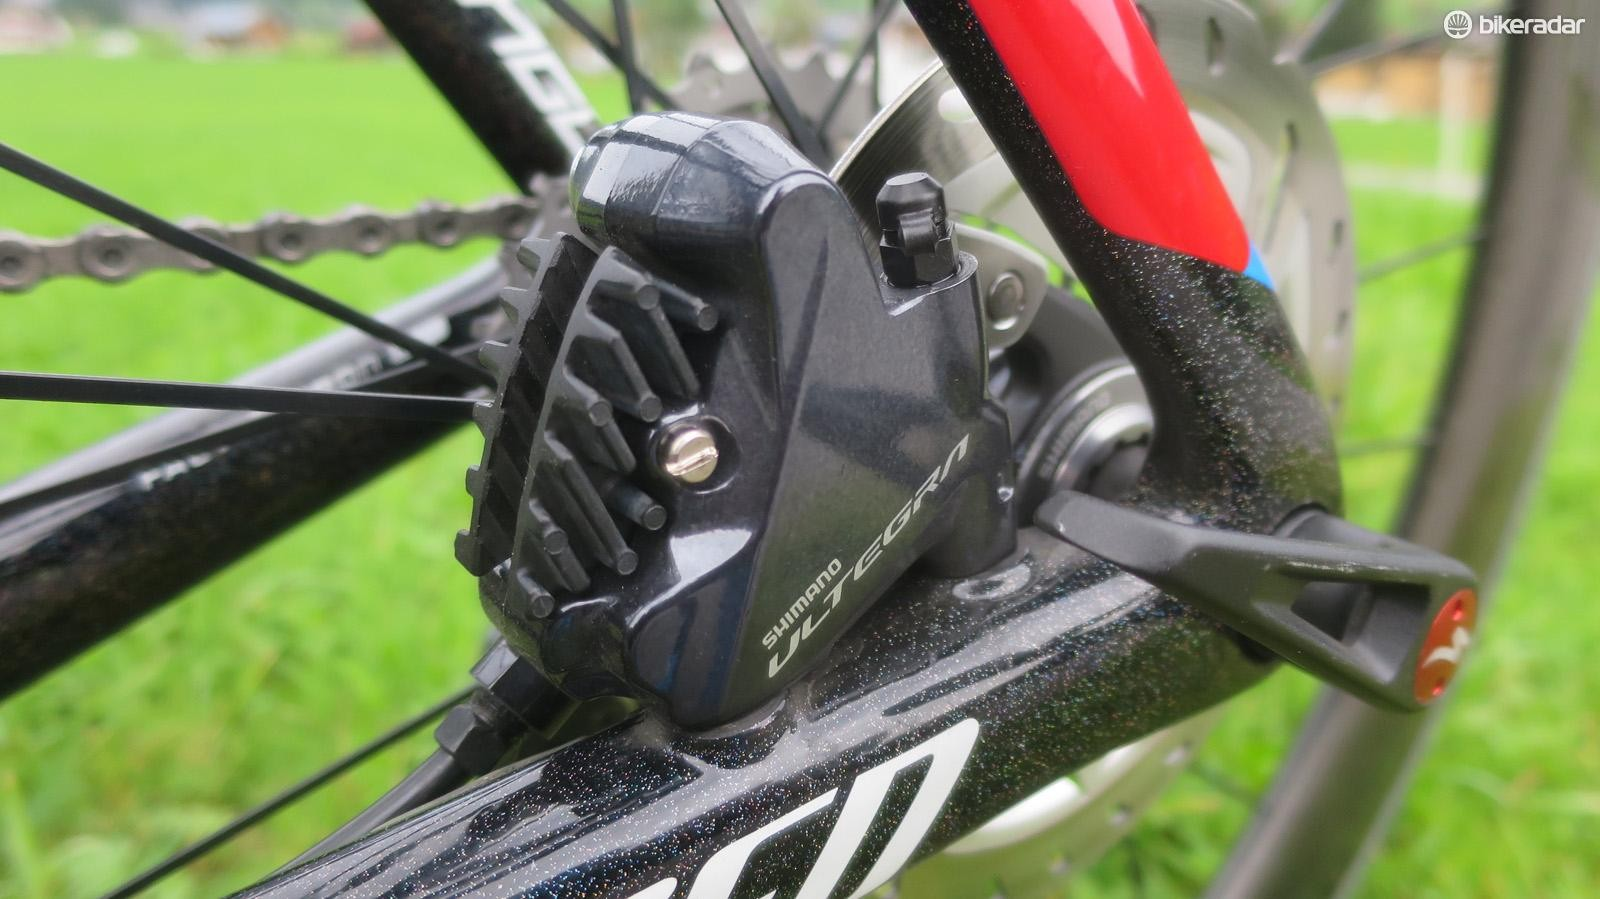 Ultegra has for the first time got hydraulic disc brakes bearing its name